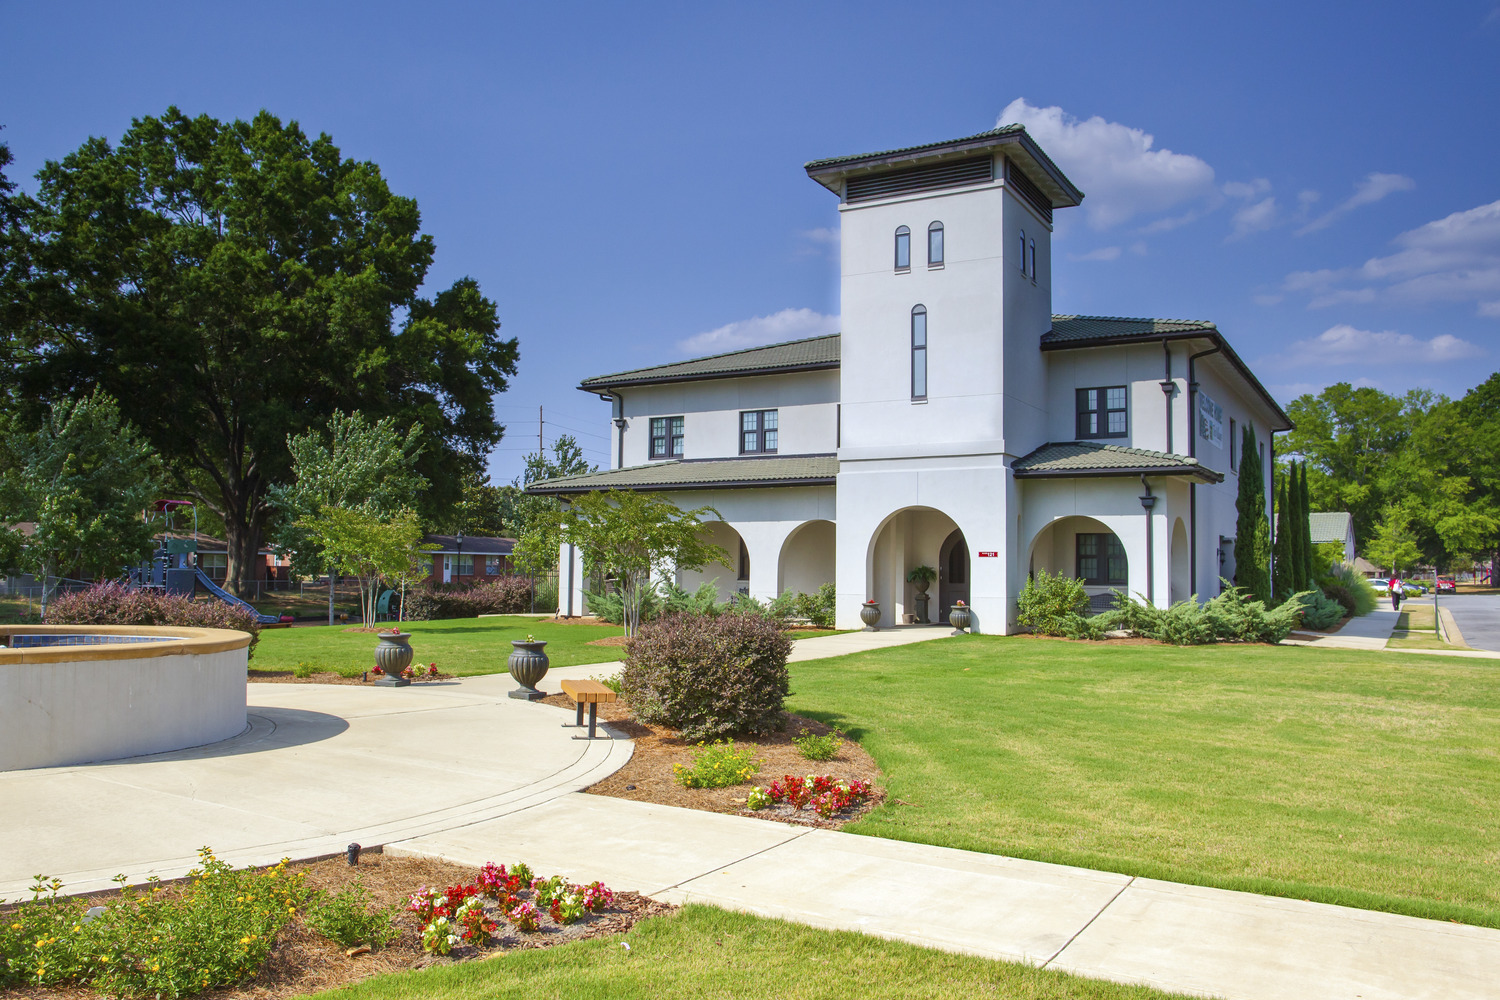 CBG builds Fort Benning Family Housing, a 3,667 Units of Housing for the Army in Fort Benning, GA - Image #5